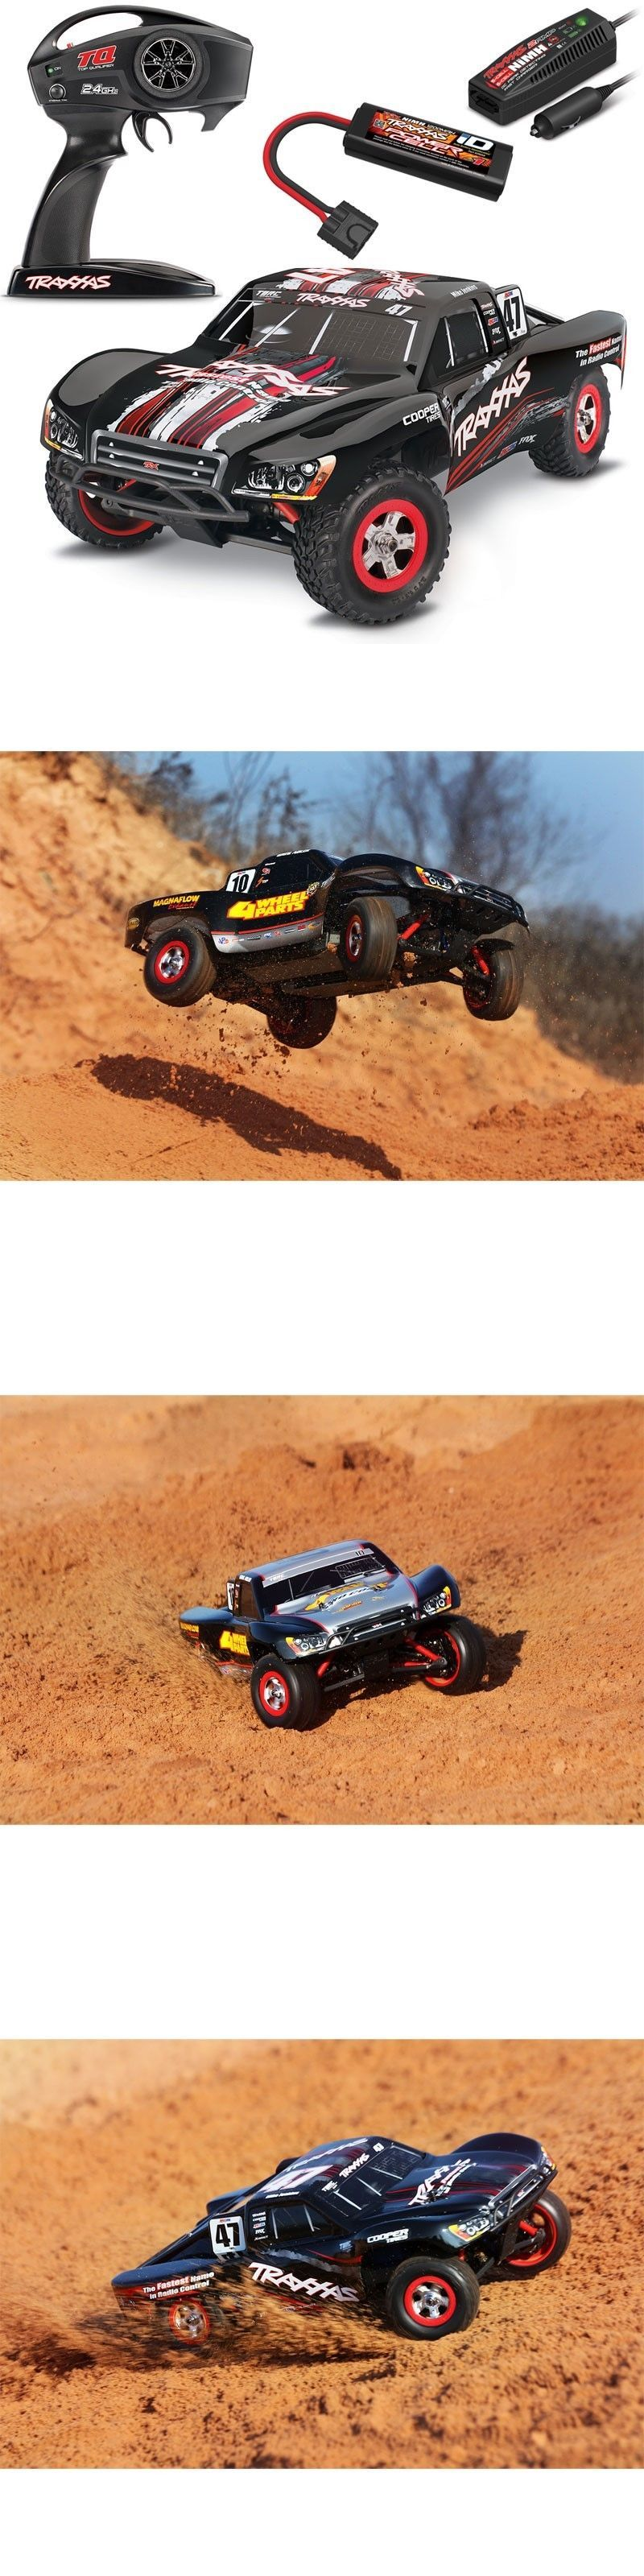 Cars Trucks and Motorcycles 182183 Traxxas Slash 1 16 4X4